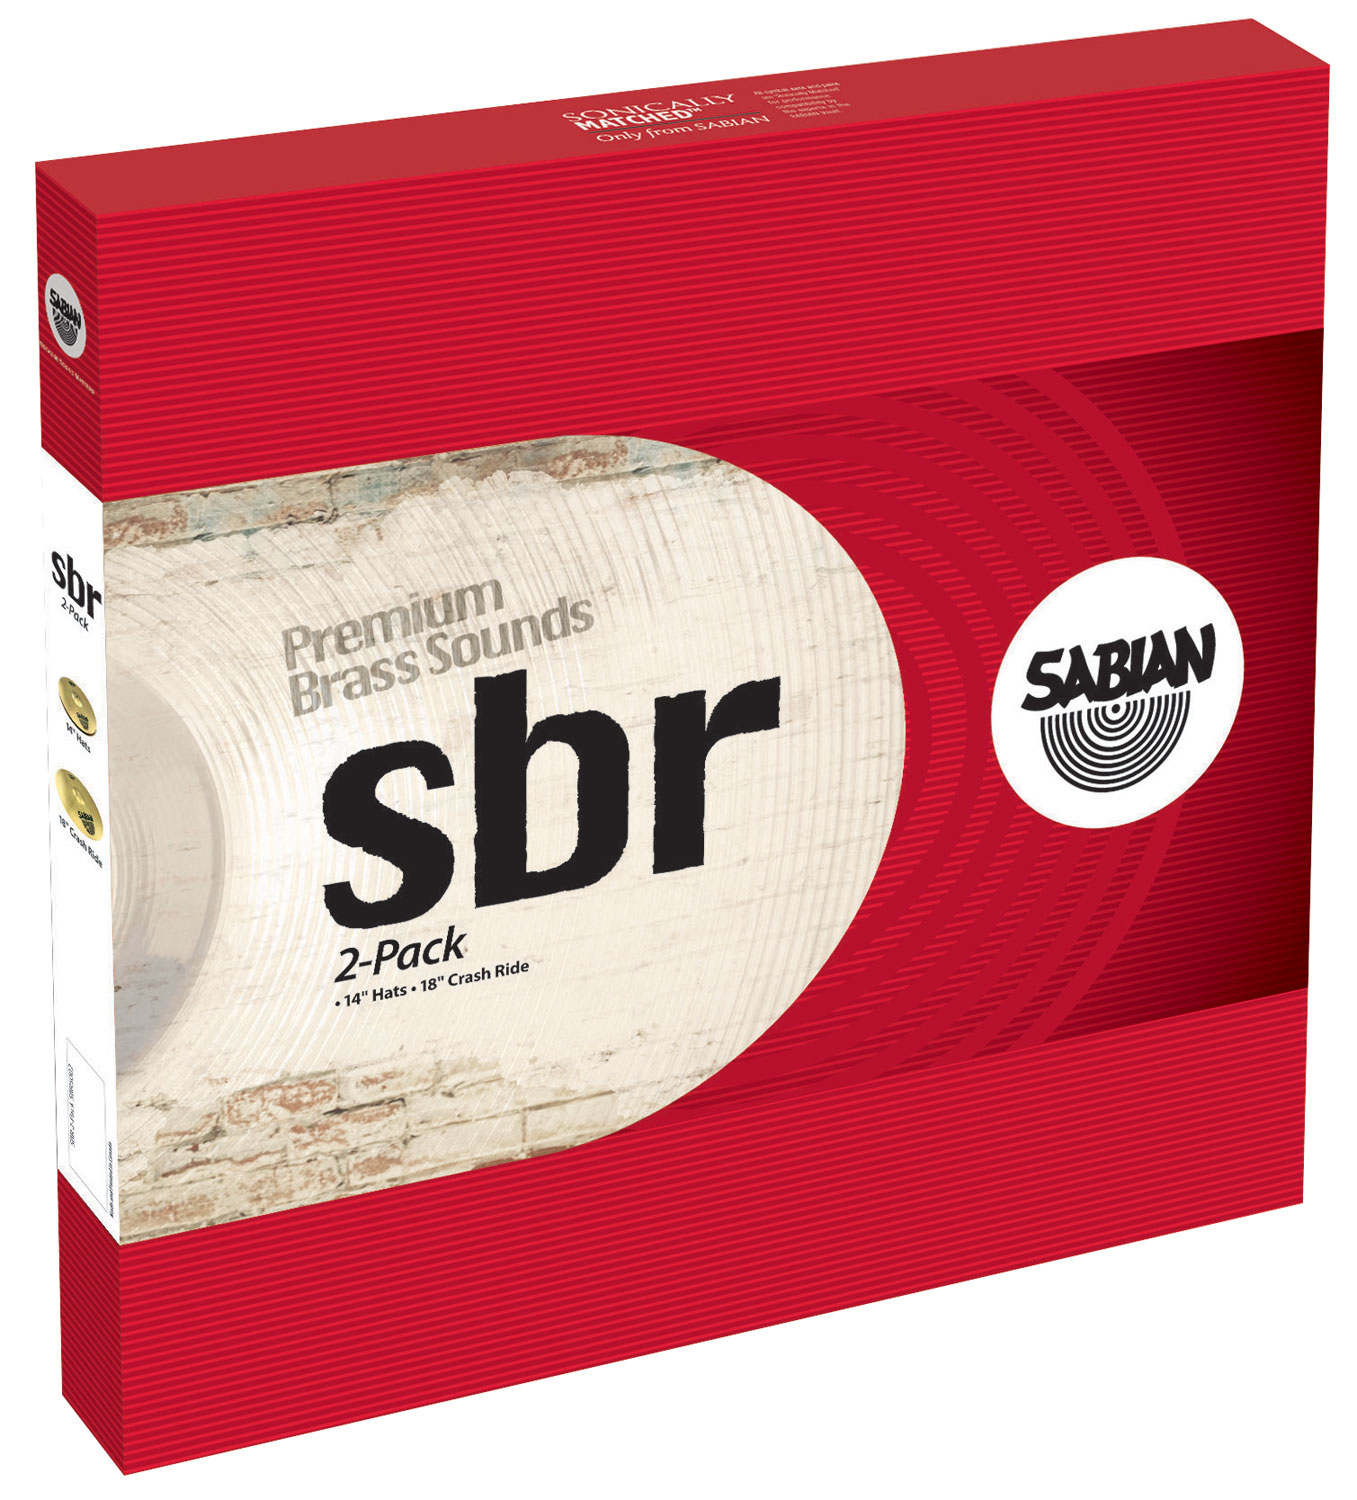 Sabian SBR 2-Pack 2-Piece Cymbal Box Set (Hi Hats, Crash/Ride)